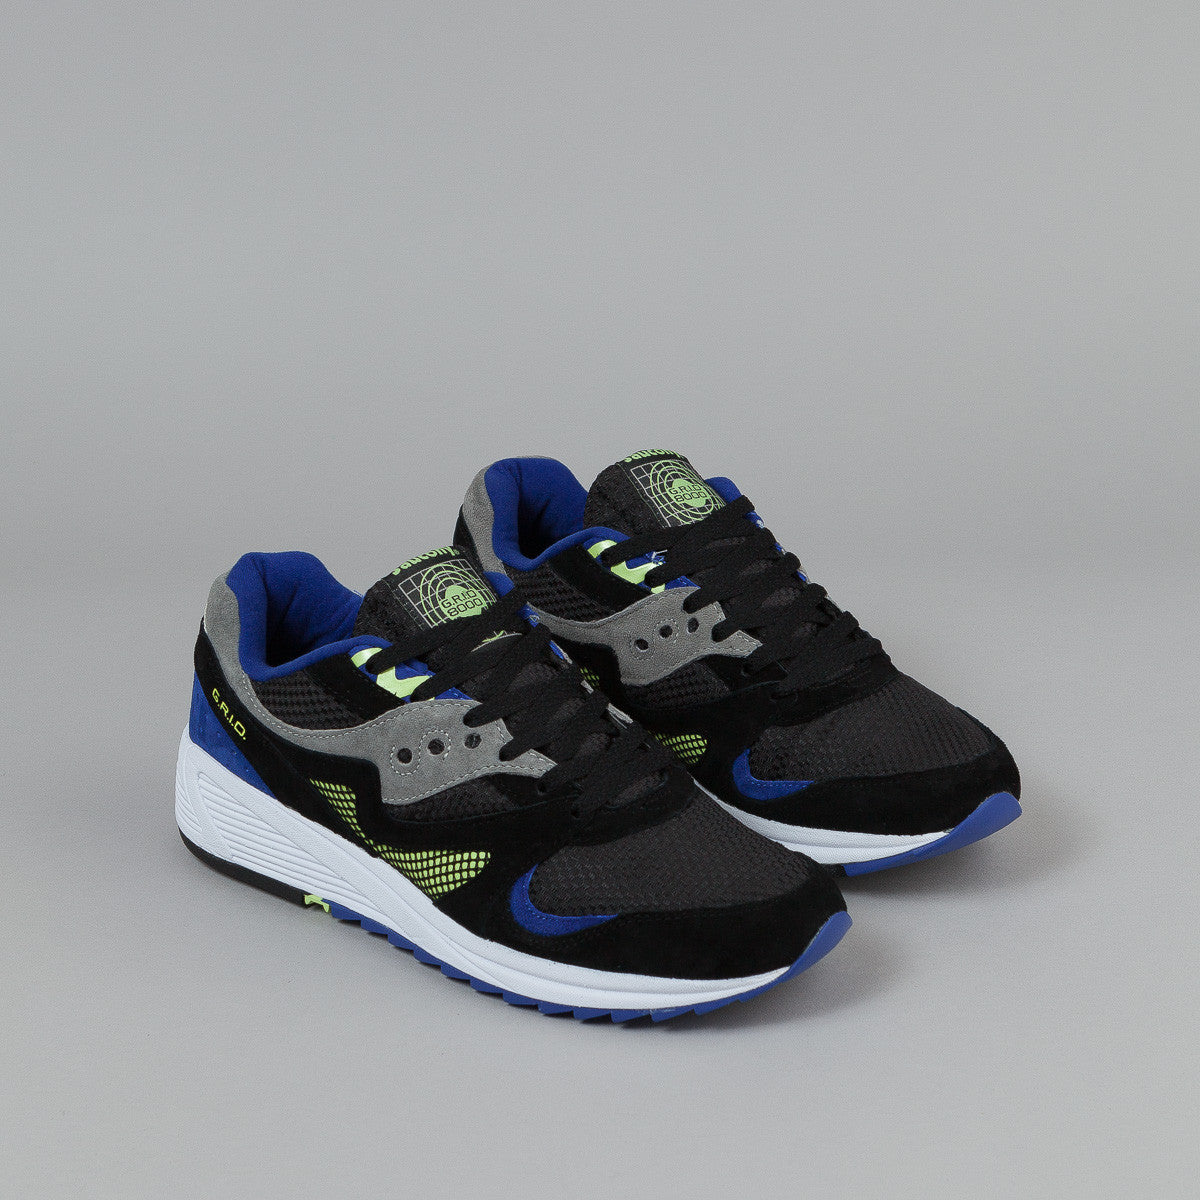 Saucony Grid 8000 CL Shoes - Black / Grey / Purple